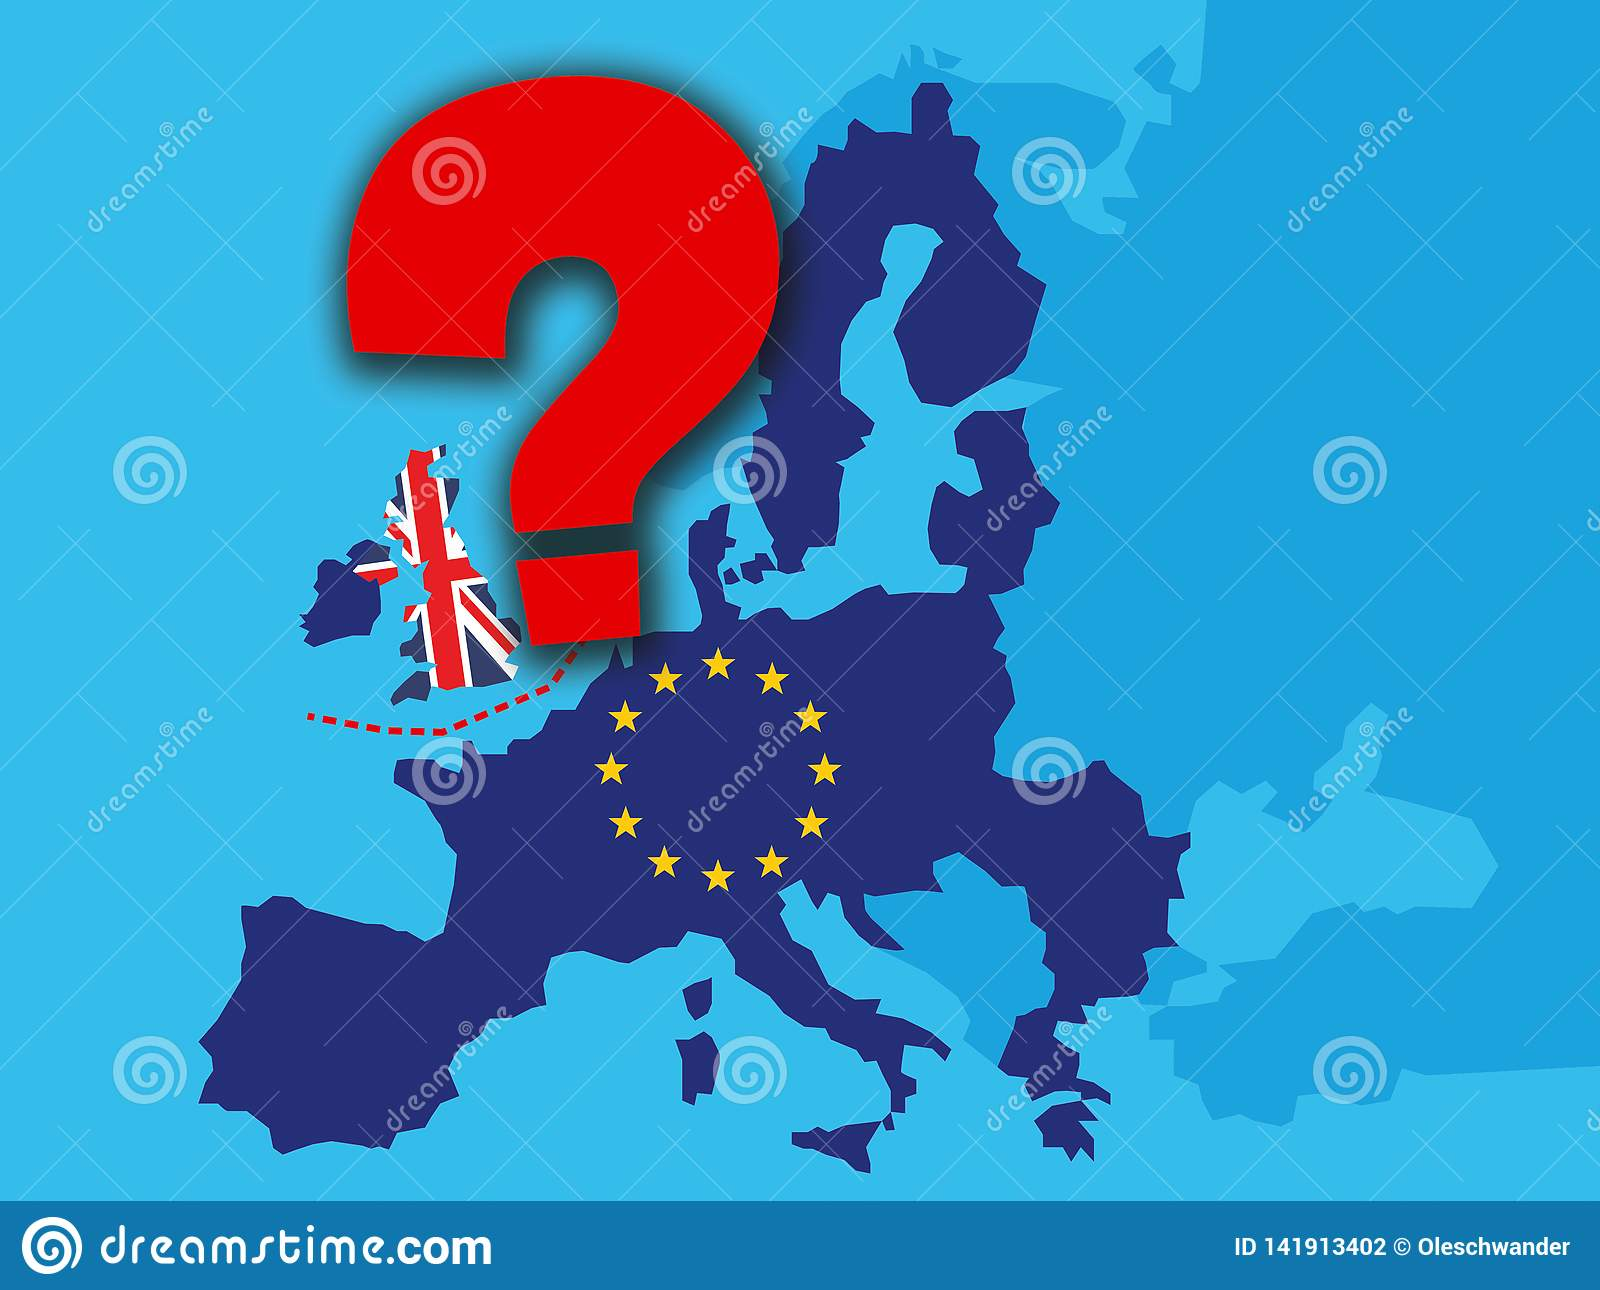 Brexit concept - UK economy after Brexit with a big red question mark - UK as a flag and EU stars on map of europe with big qustio